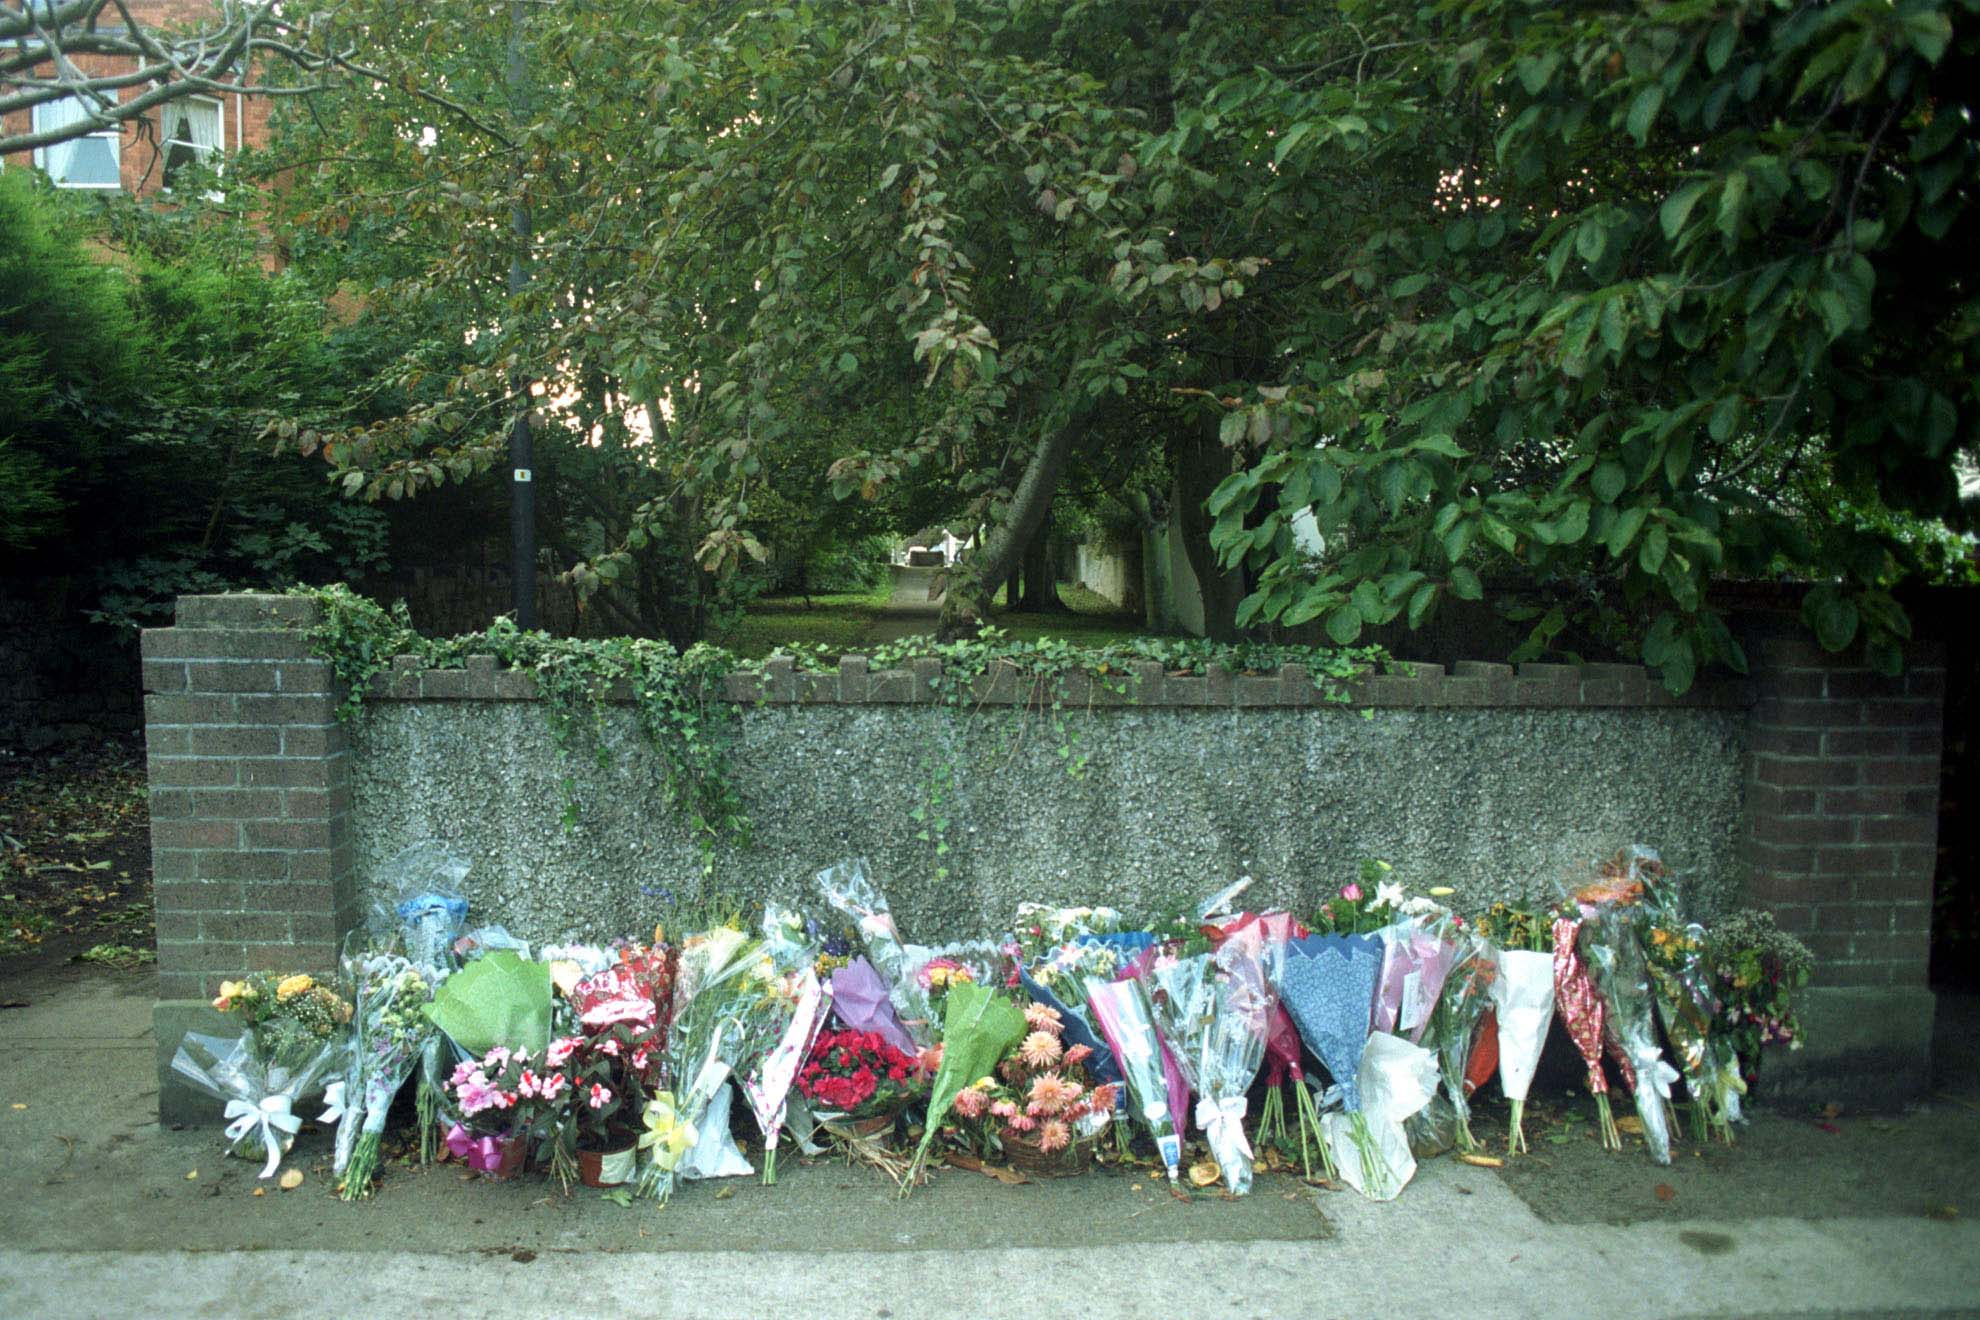 Flowers are seen in Dún Laoghaire where Raonaid Murray was murdered in September 1999.